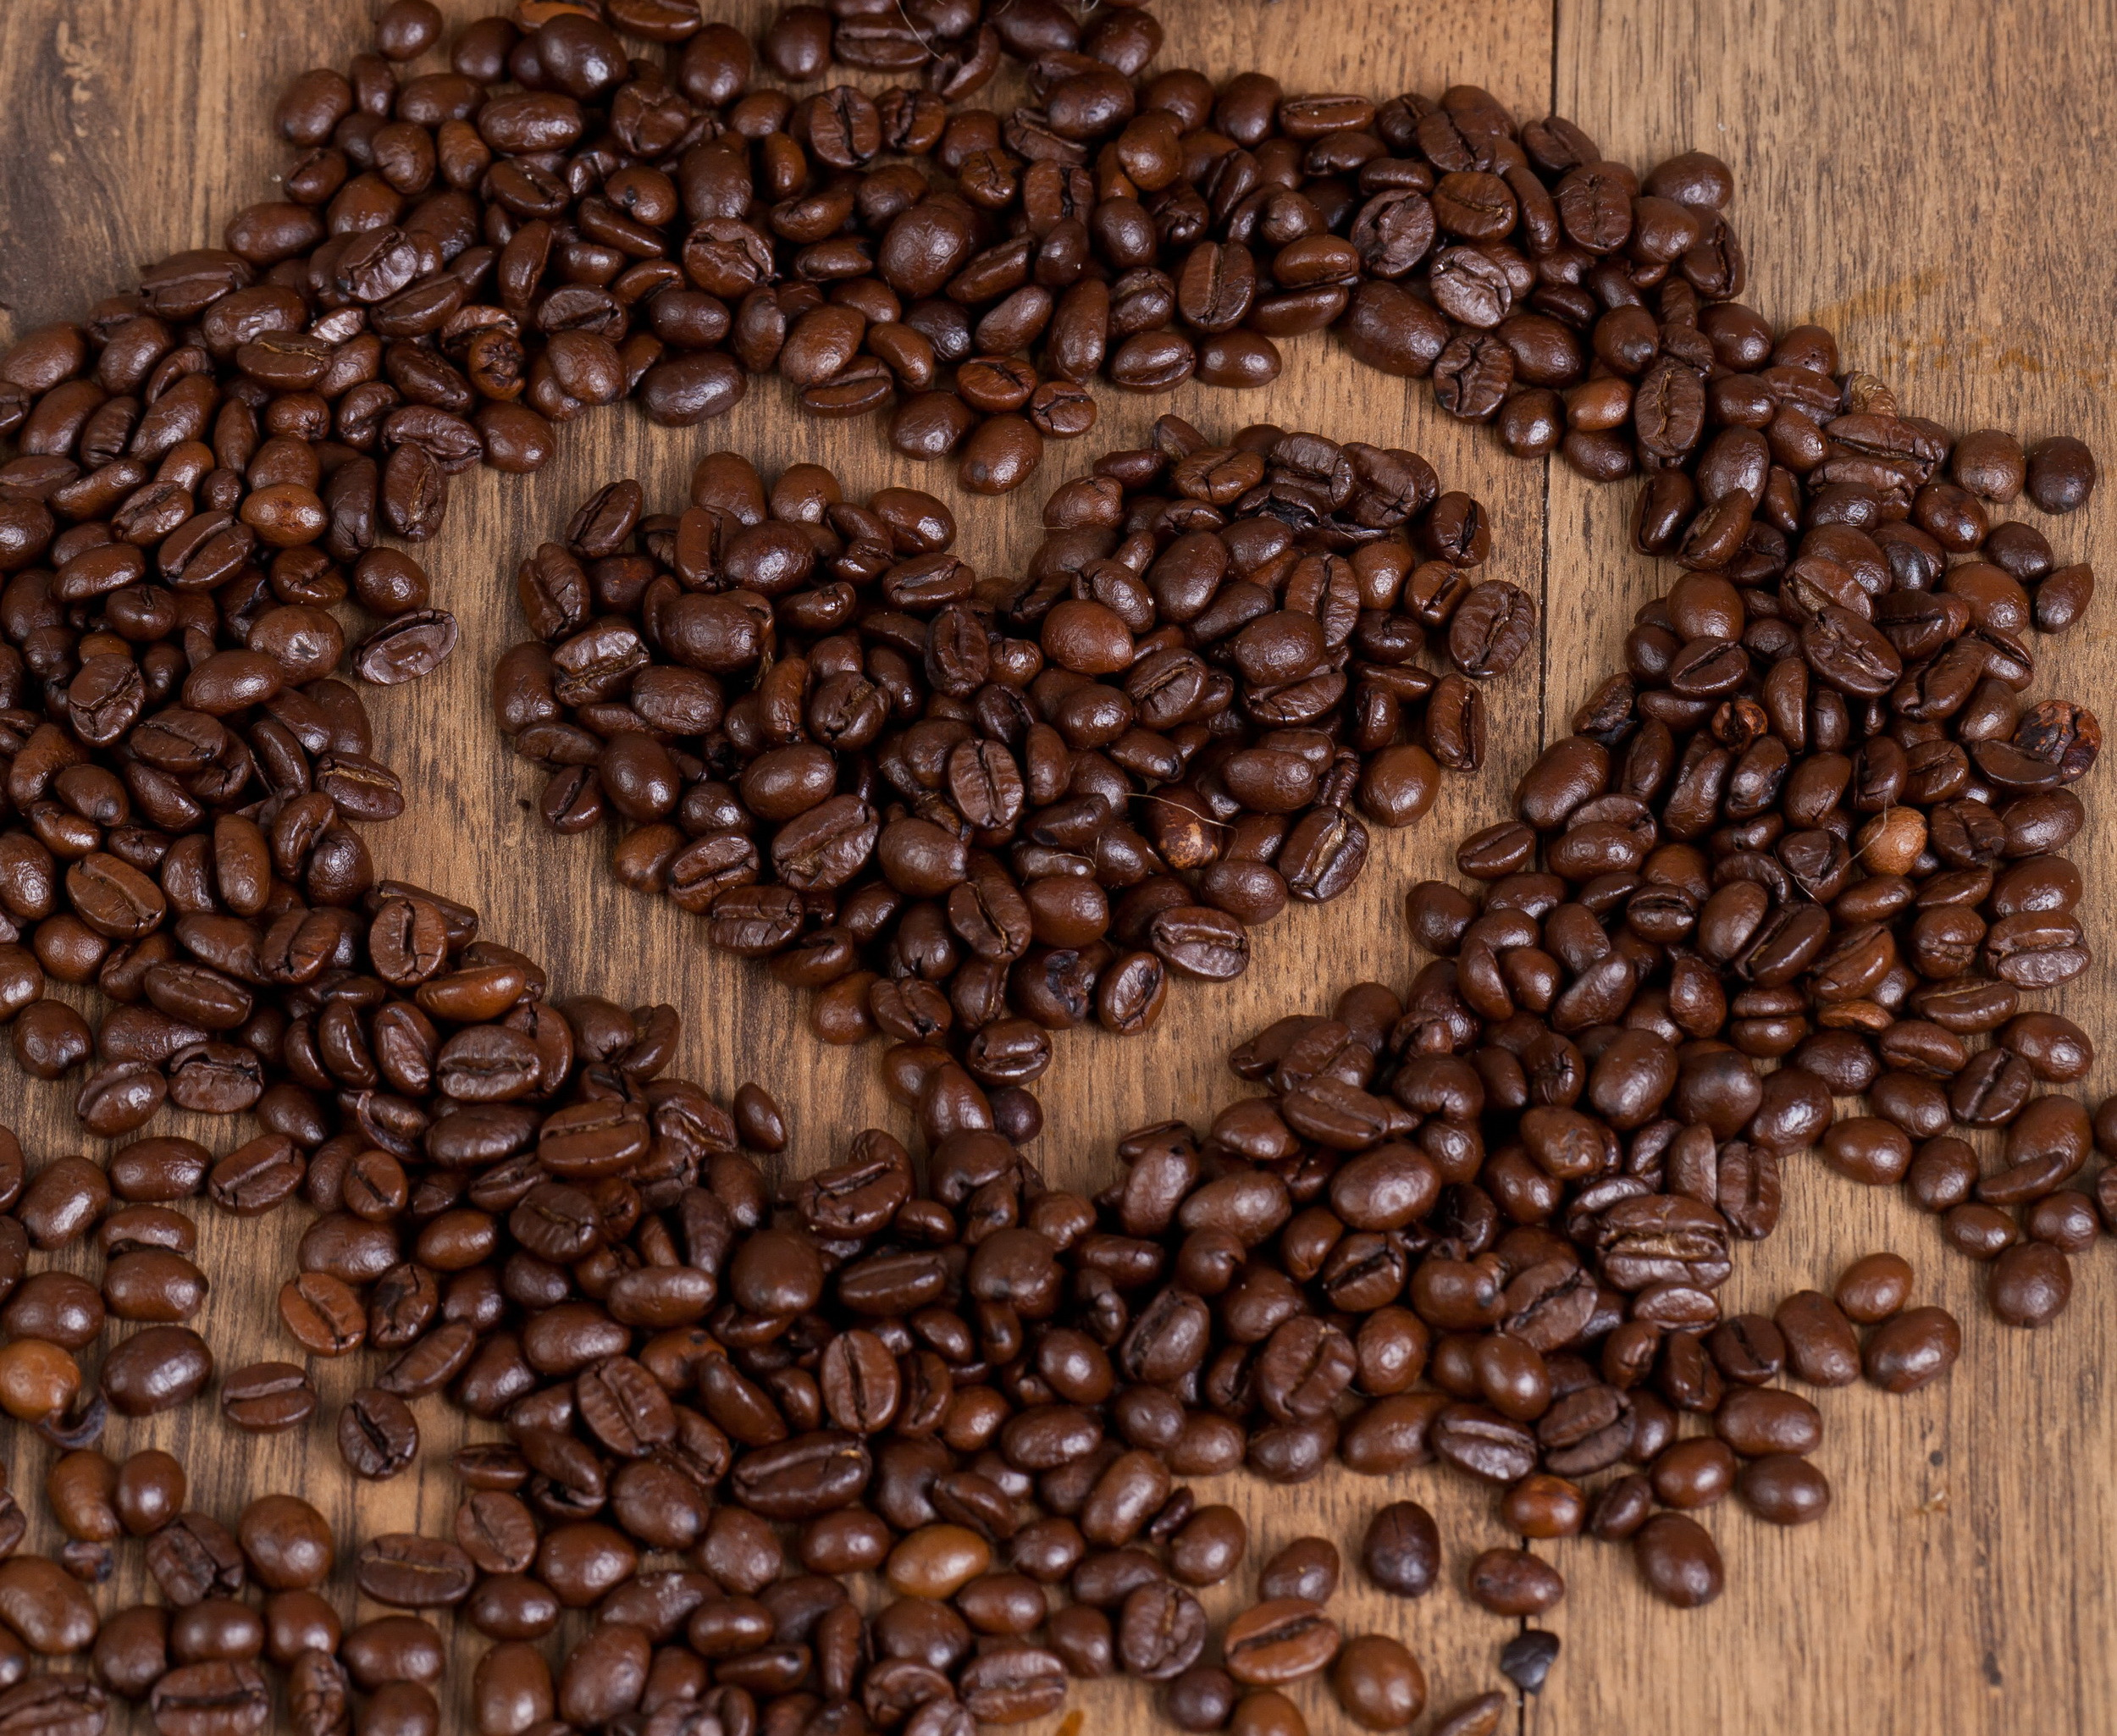 coffee bean Suppliers of green coffee, home coffee roasting supplies, and brewing equipment.